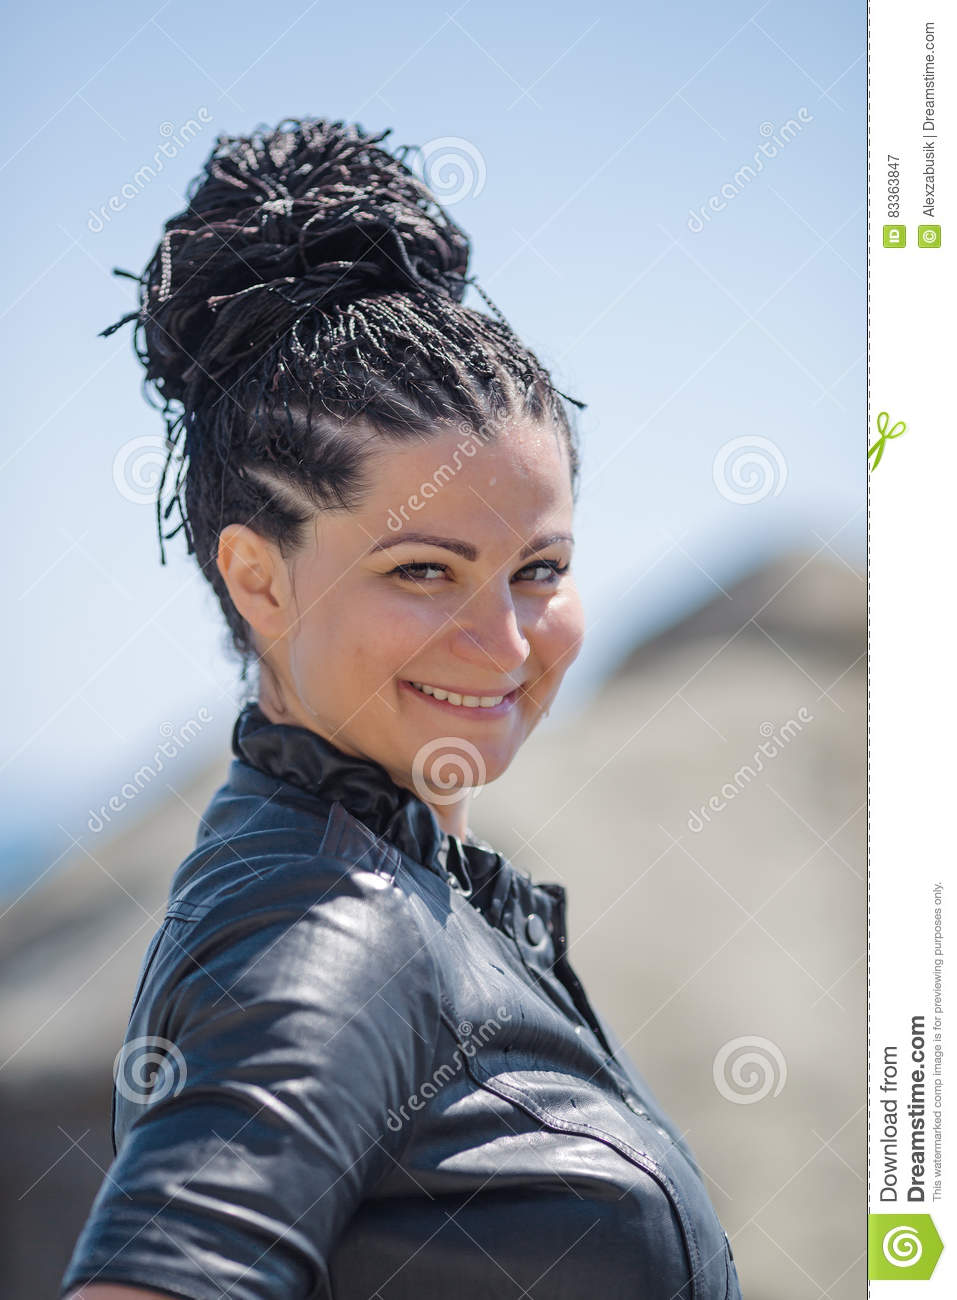 Brunette Woman Smiling Looking At Camera Stock Image